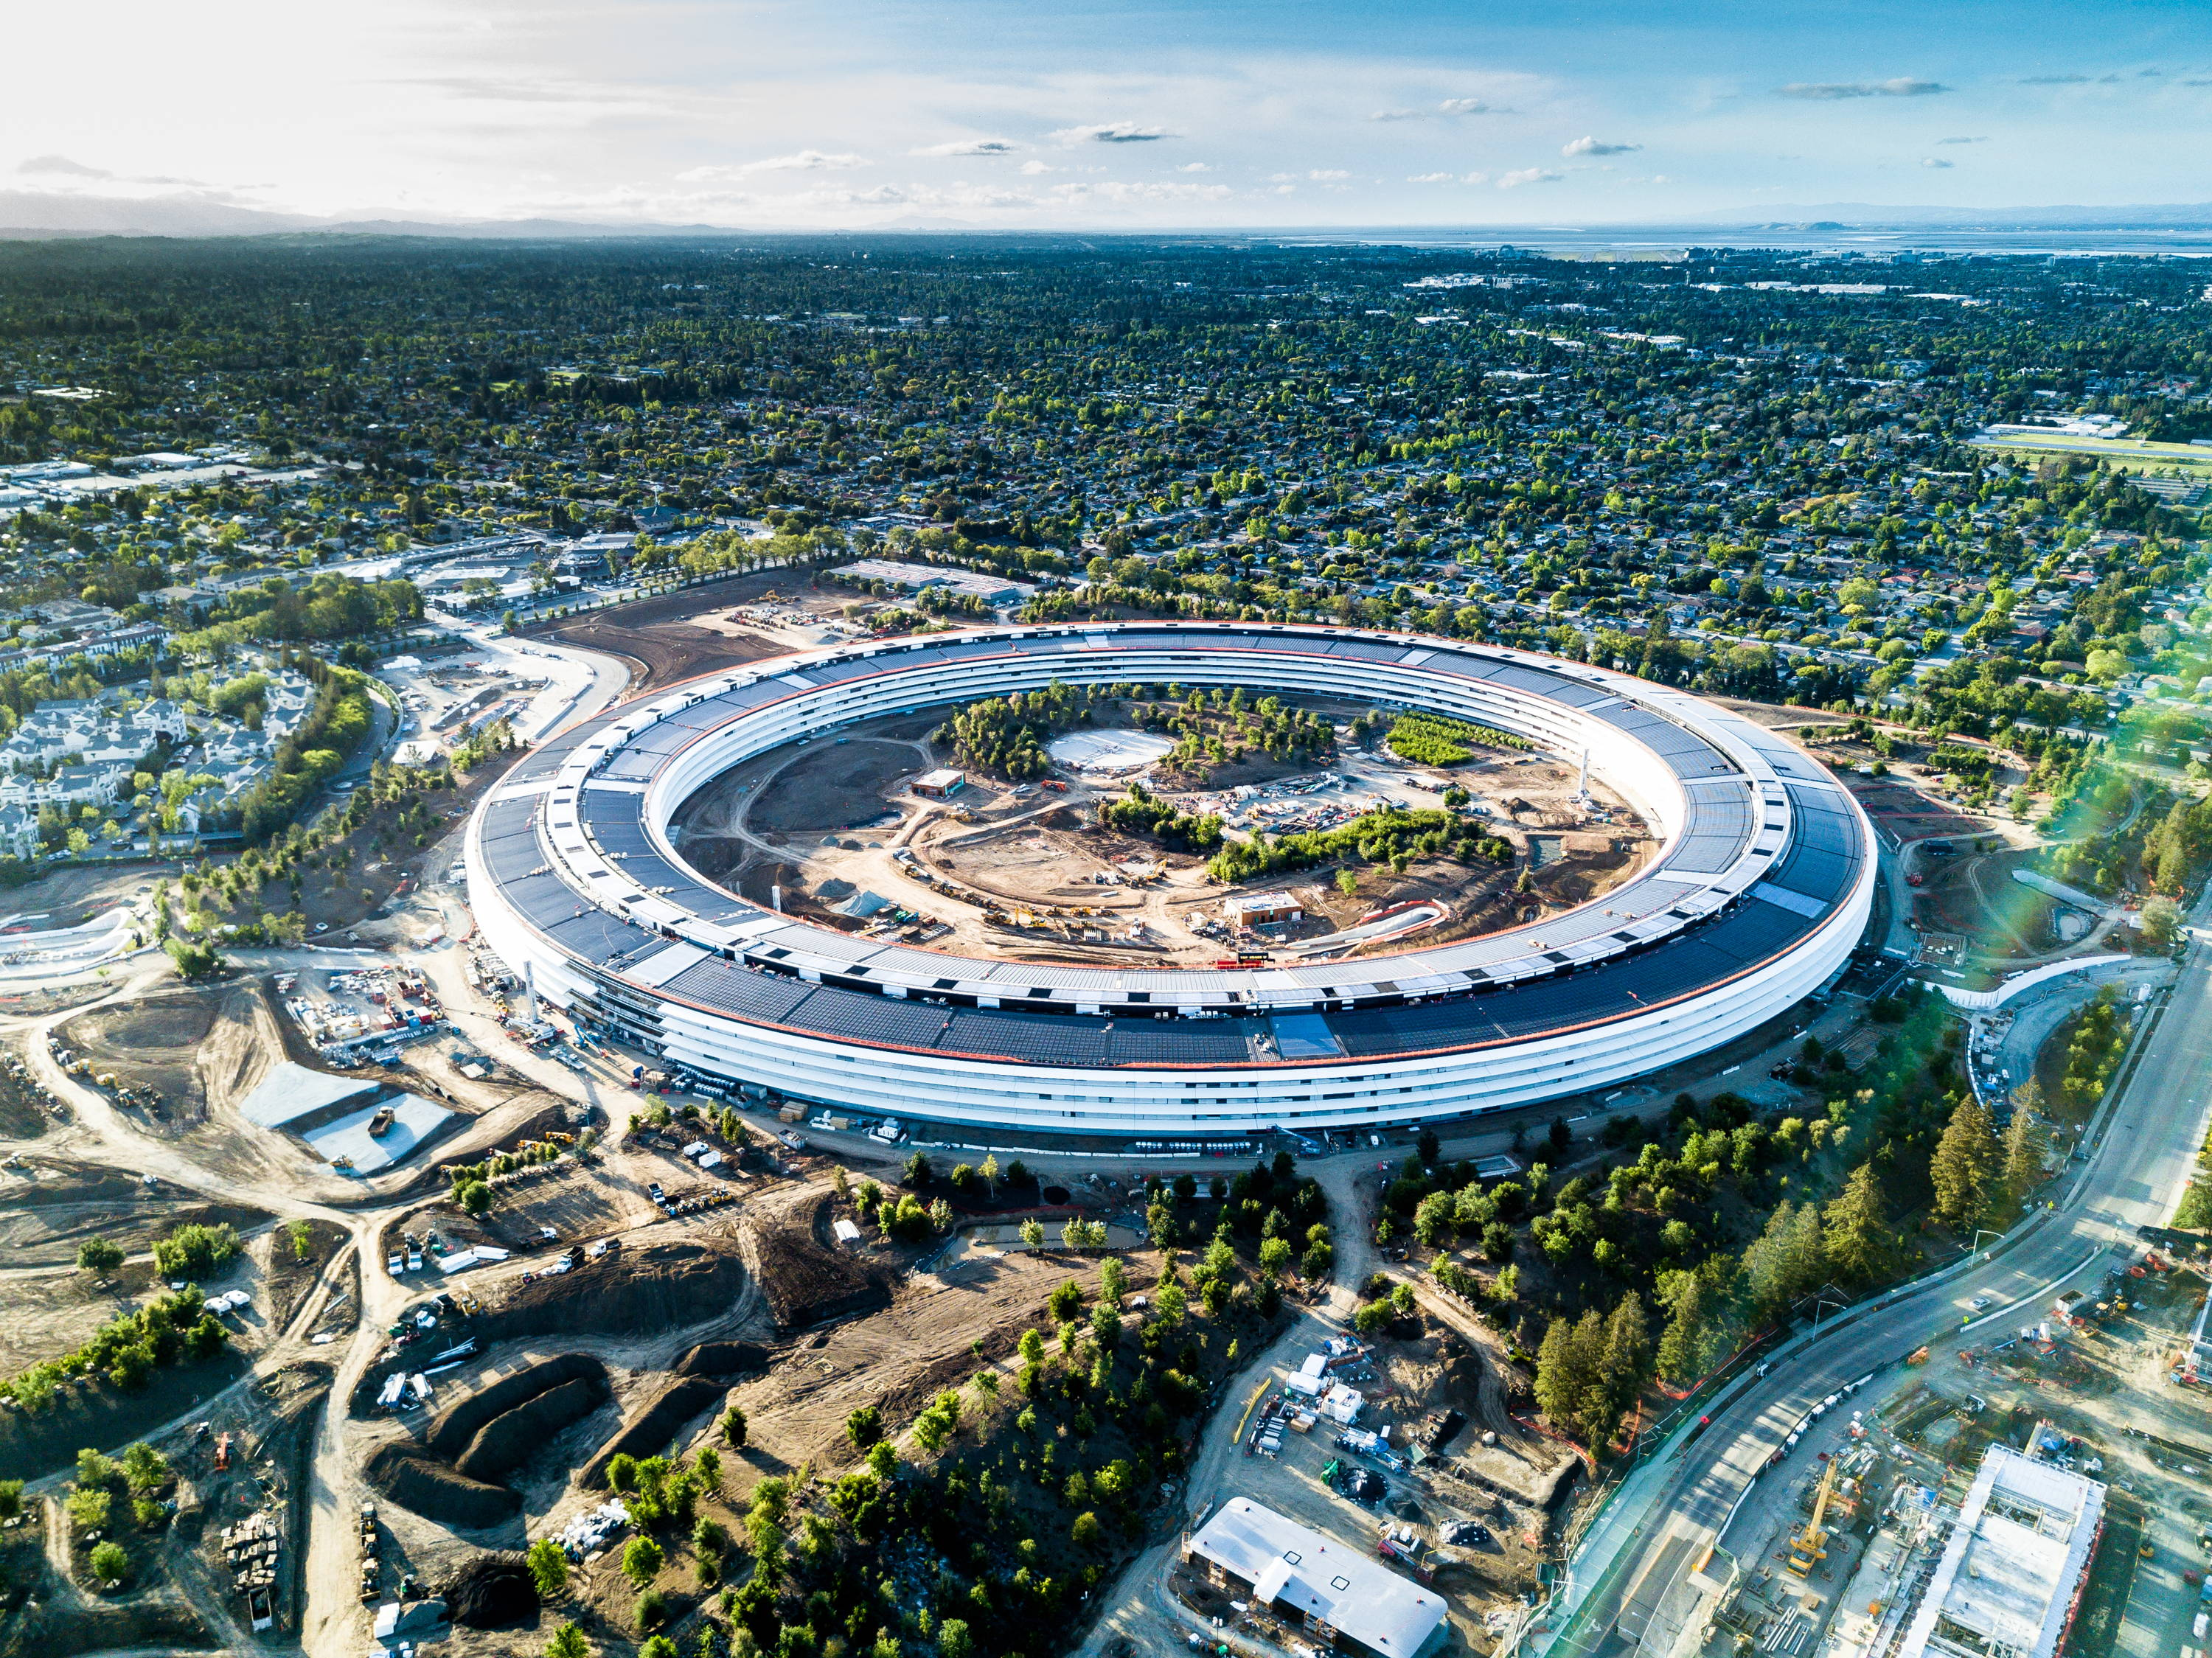 Apple Park with Solar Array